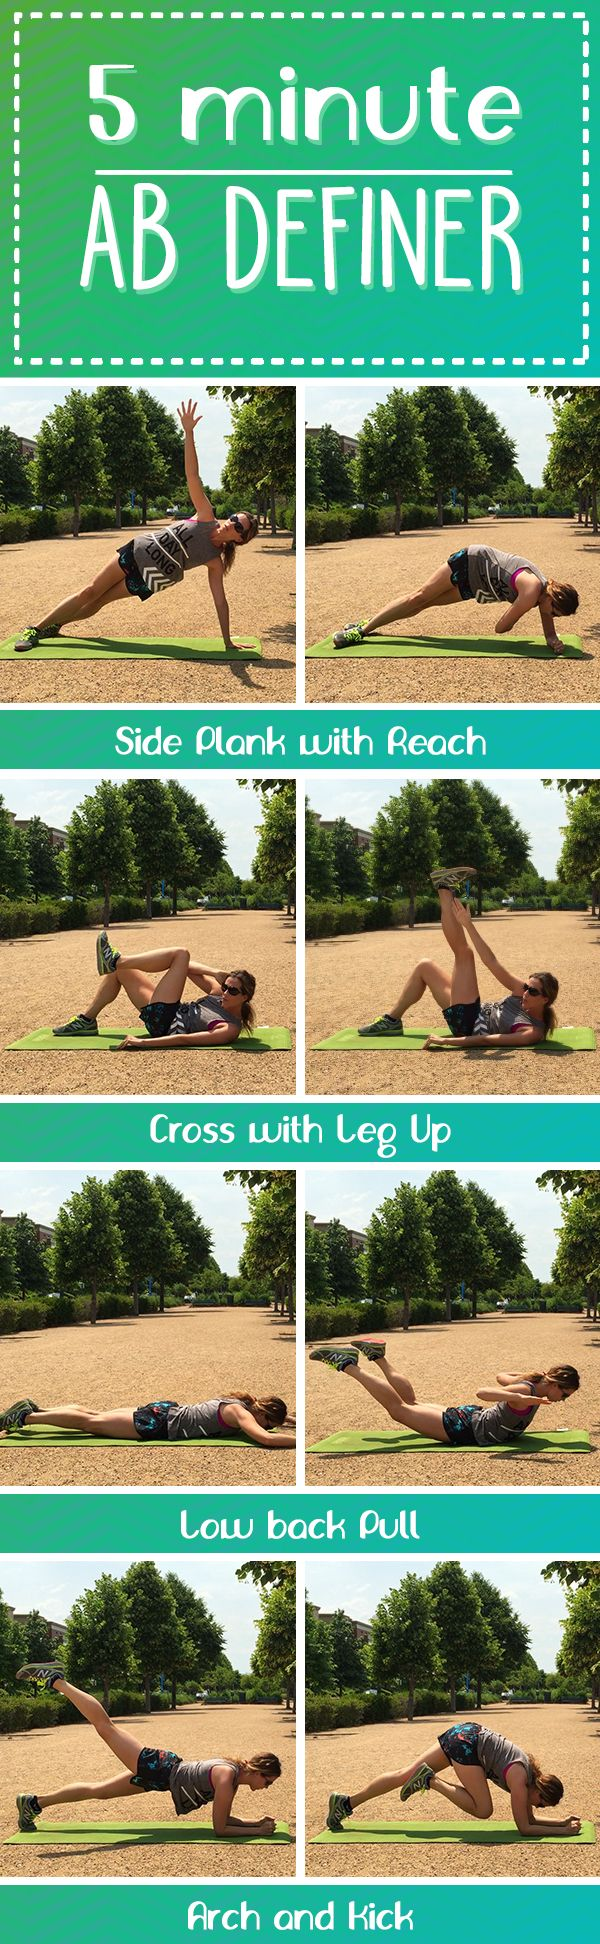 5 Minute Ab Workout - Dynamic moves that work the obliques as part of the 30 Day Ab Challenge. These moves will also make it easier to breathe while running! This is part of a campaign with Old Navy to help you get more active this summer!